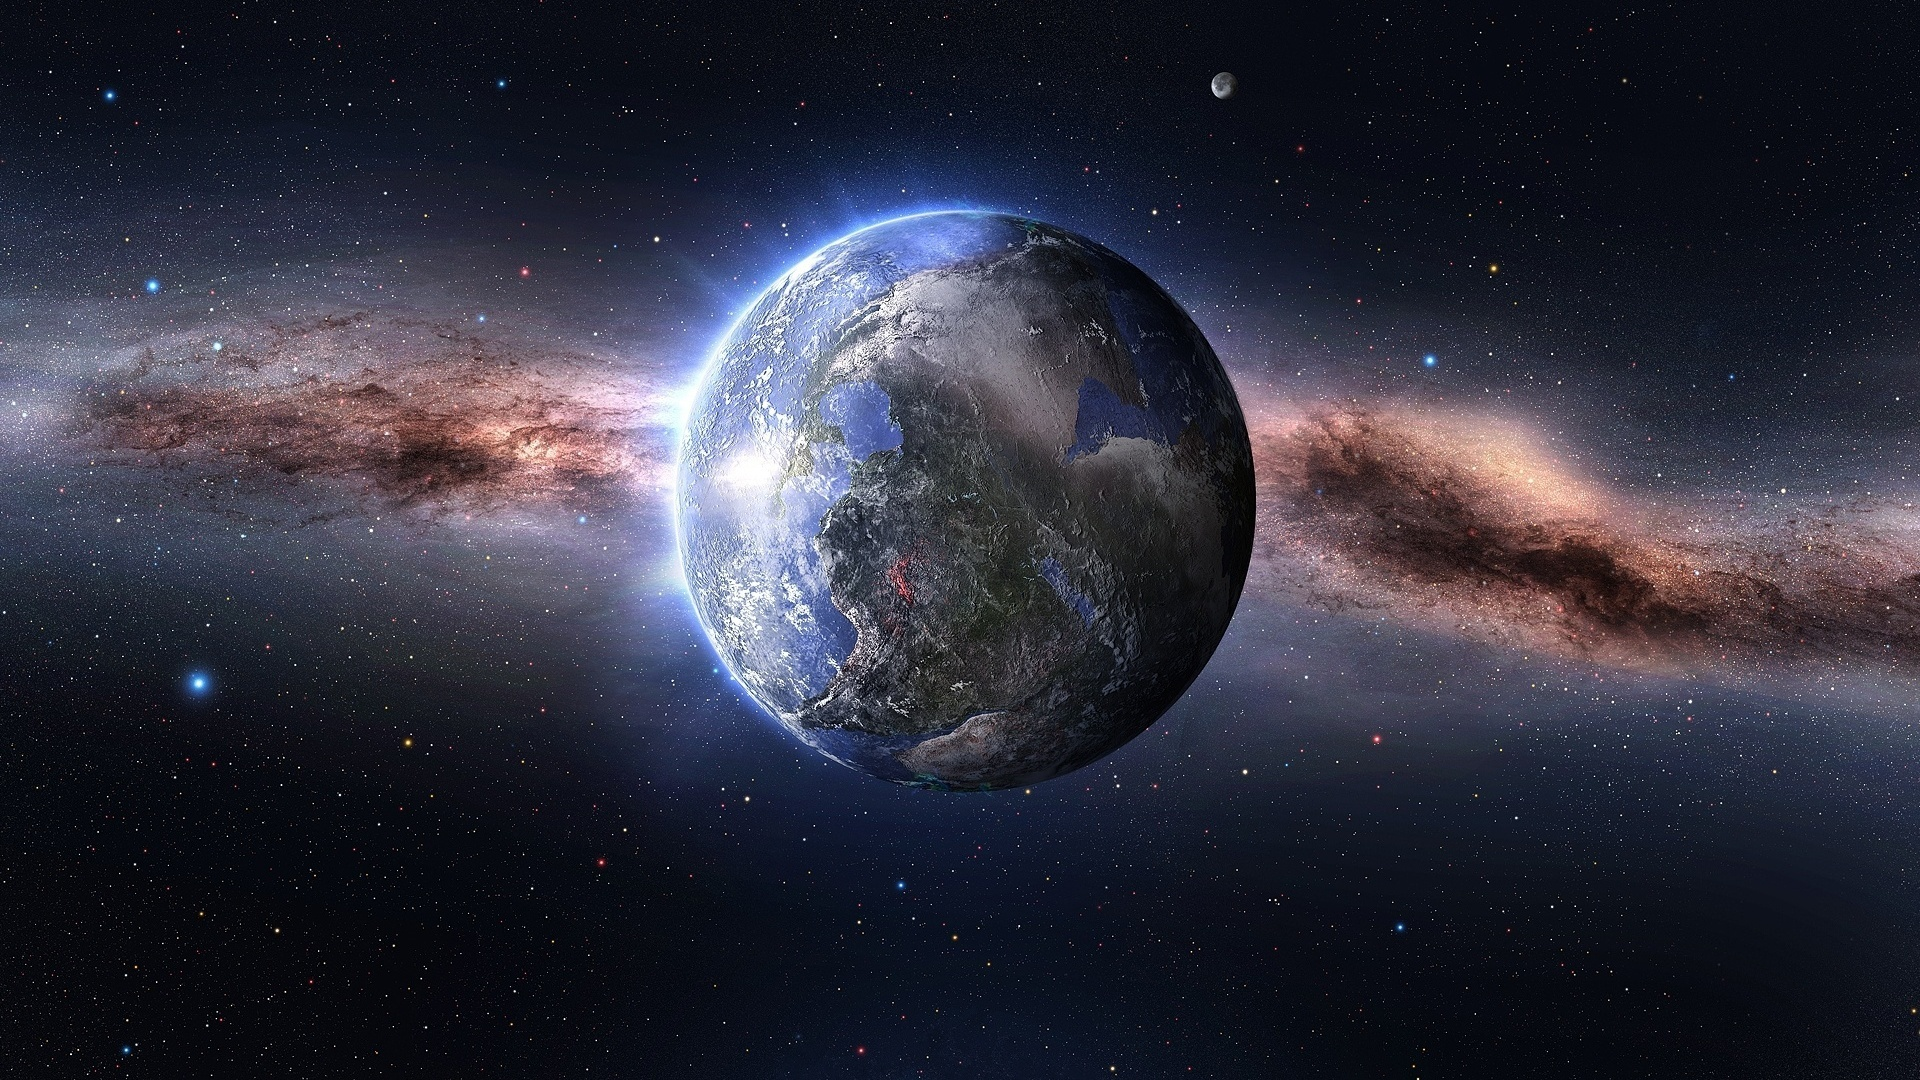 Real Space Wallpapers: Real Space Wallpaper